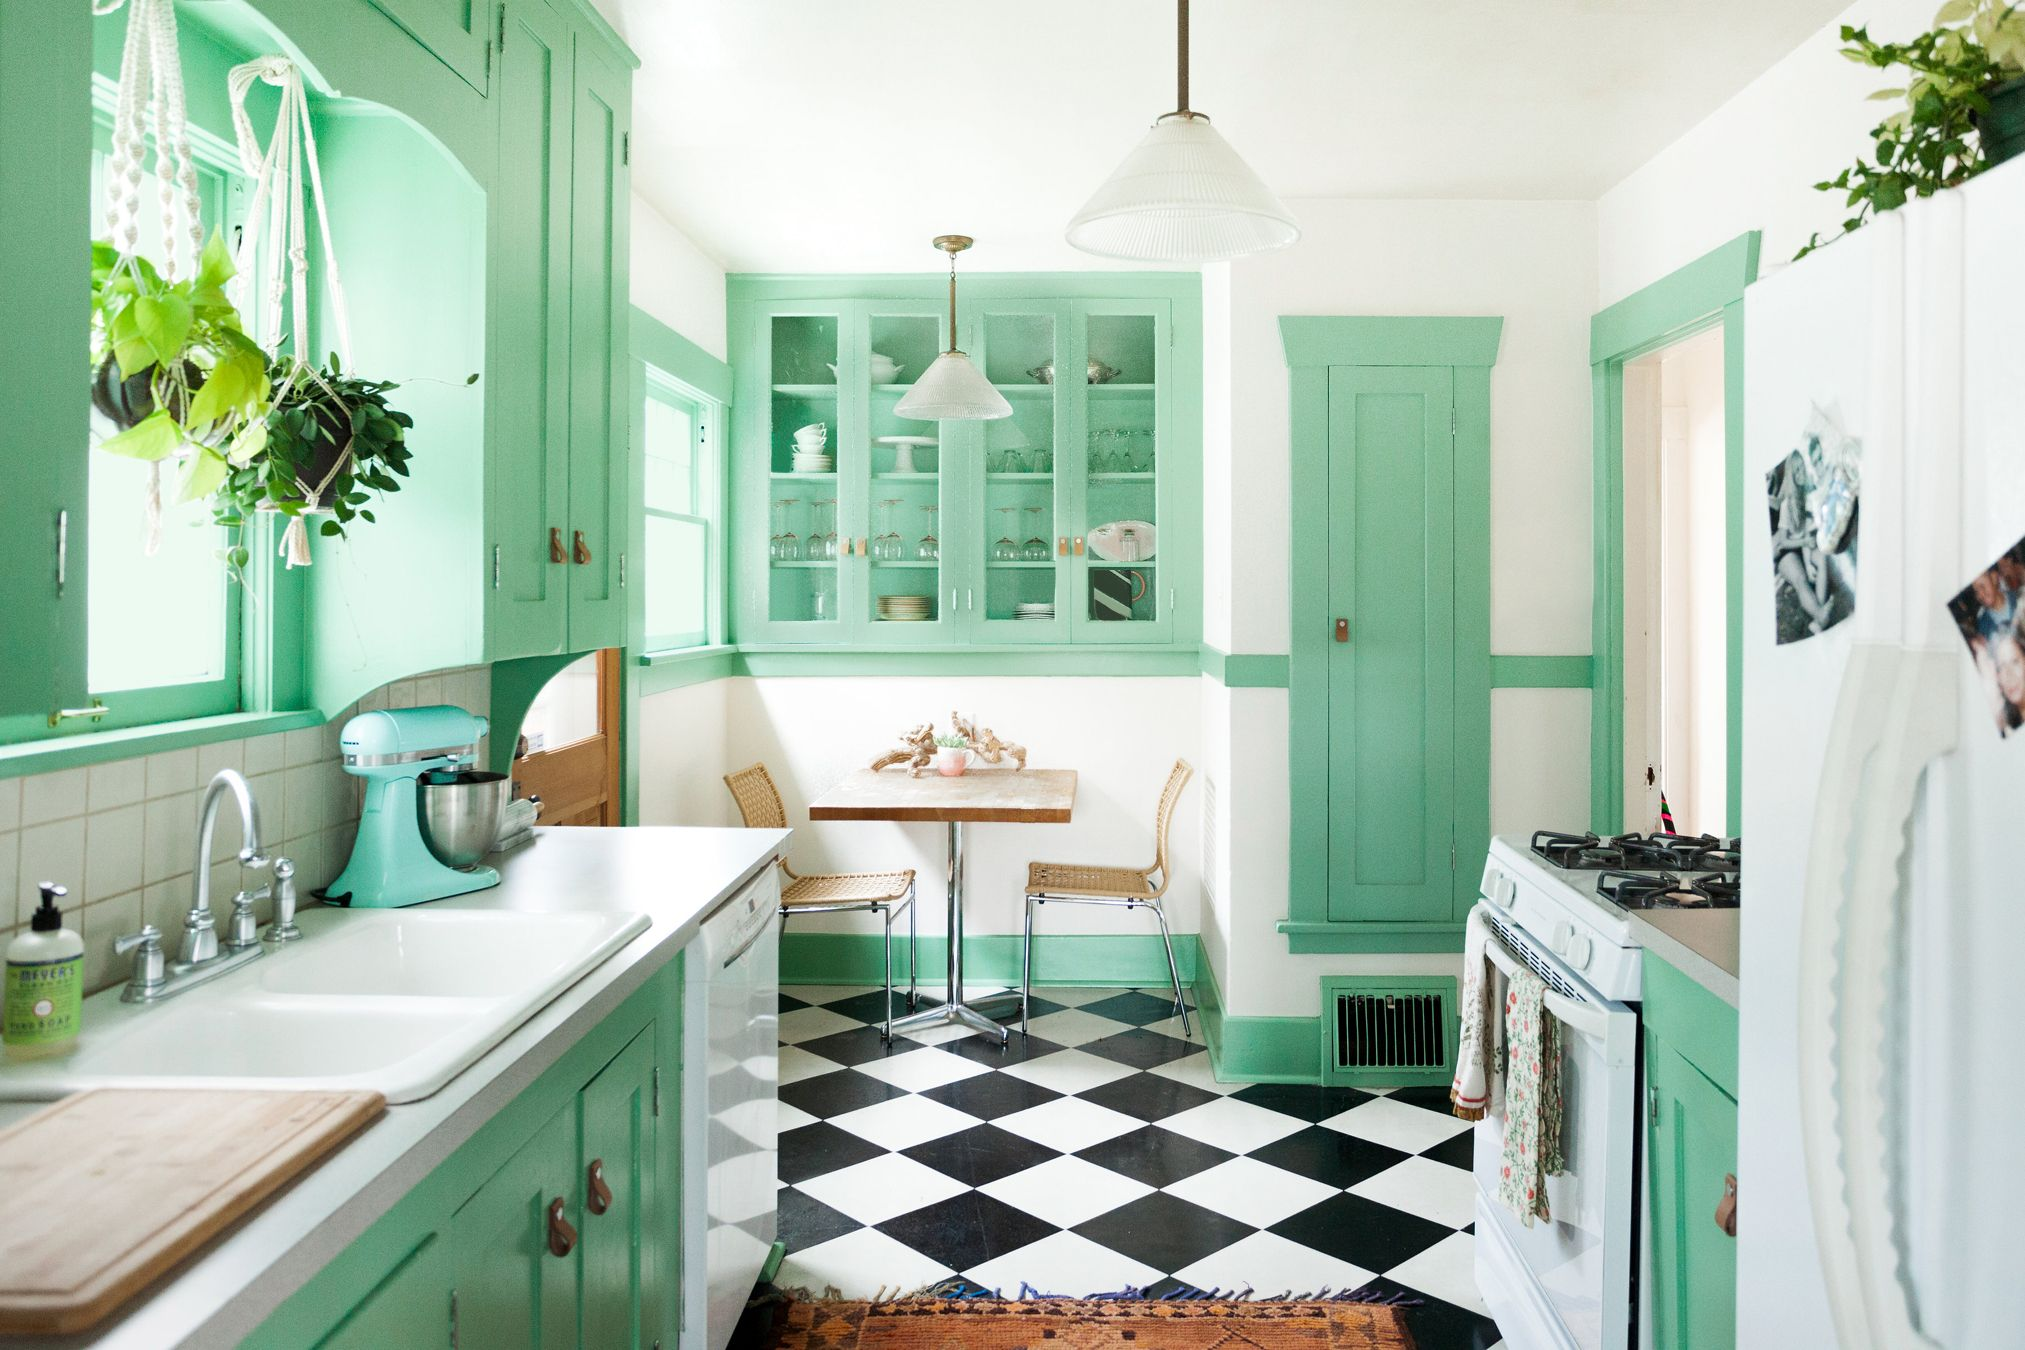 15 Best Green Kitchen Cabinet Ideas - Top Green Paint Colors for Kitchens